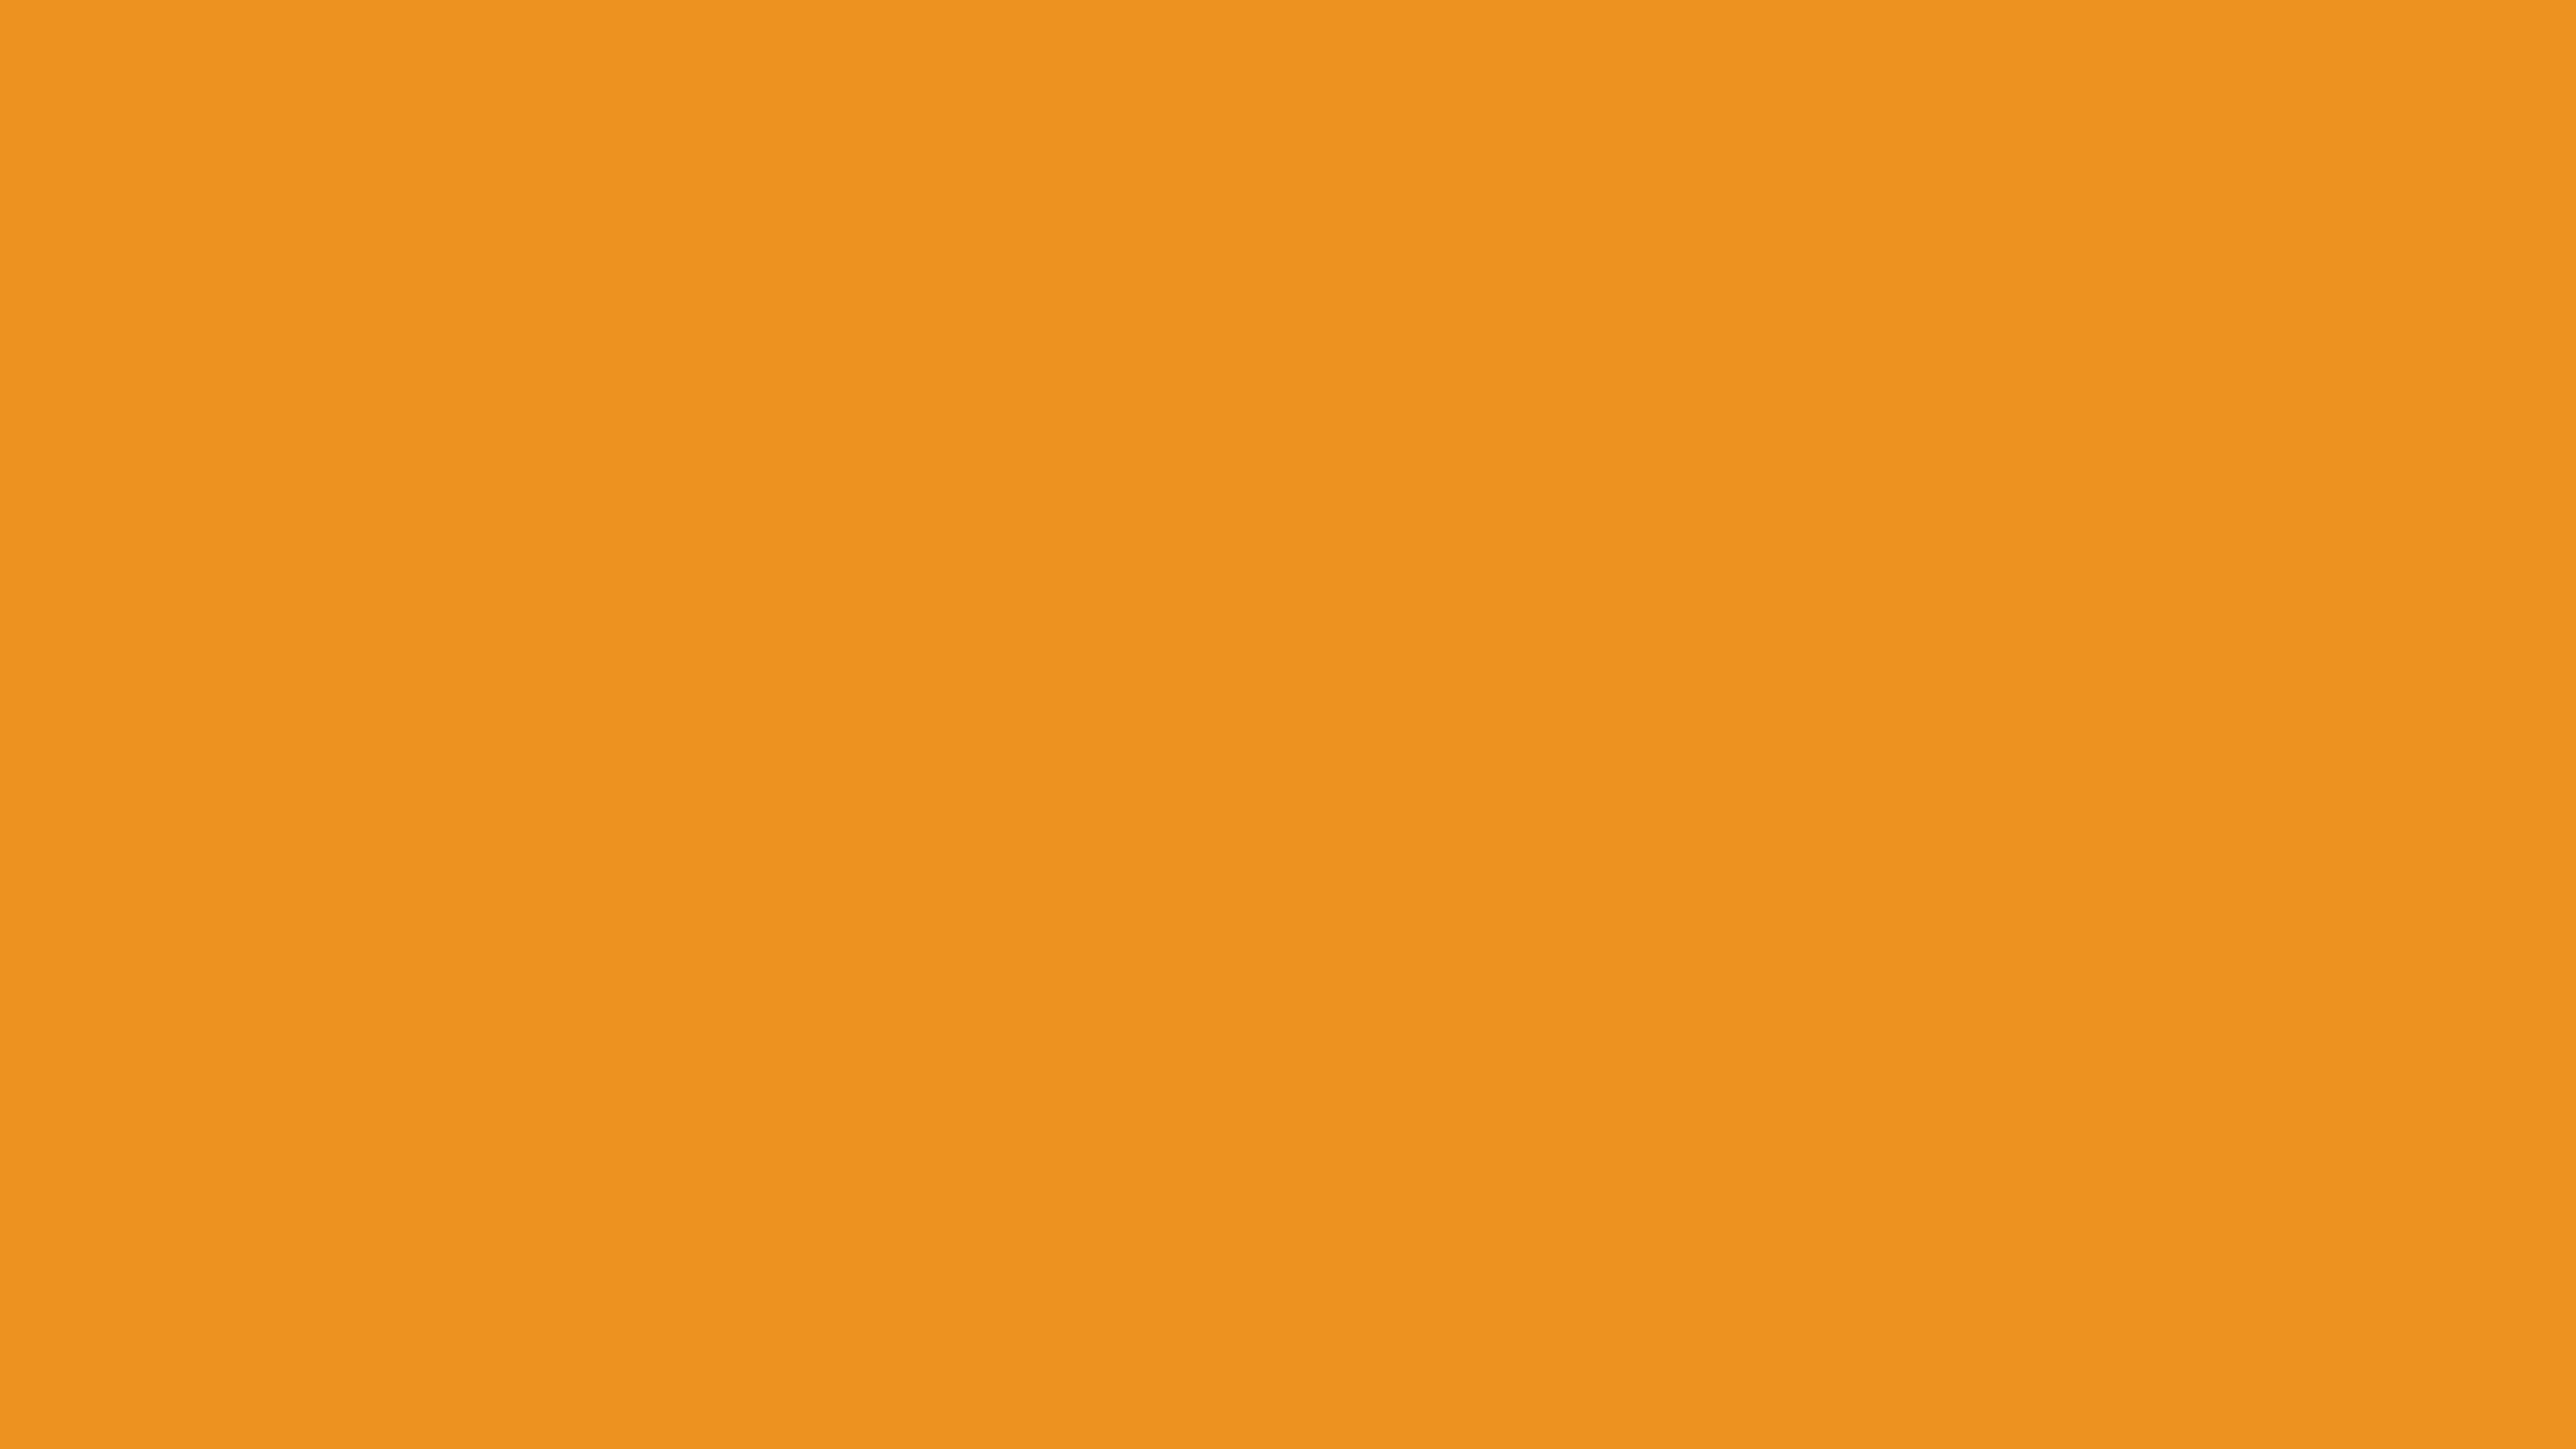 3840x2160 Carrot Orange Solid Color Background